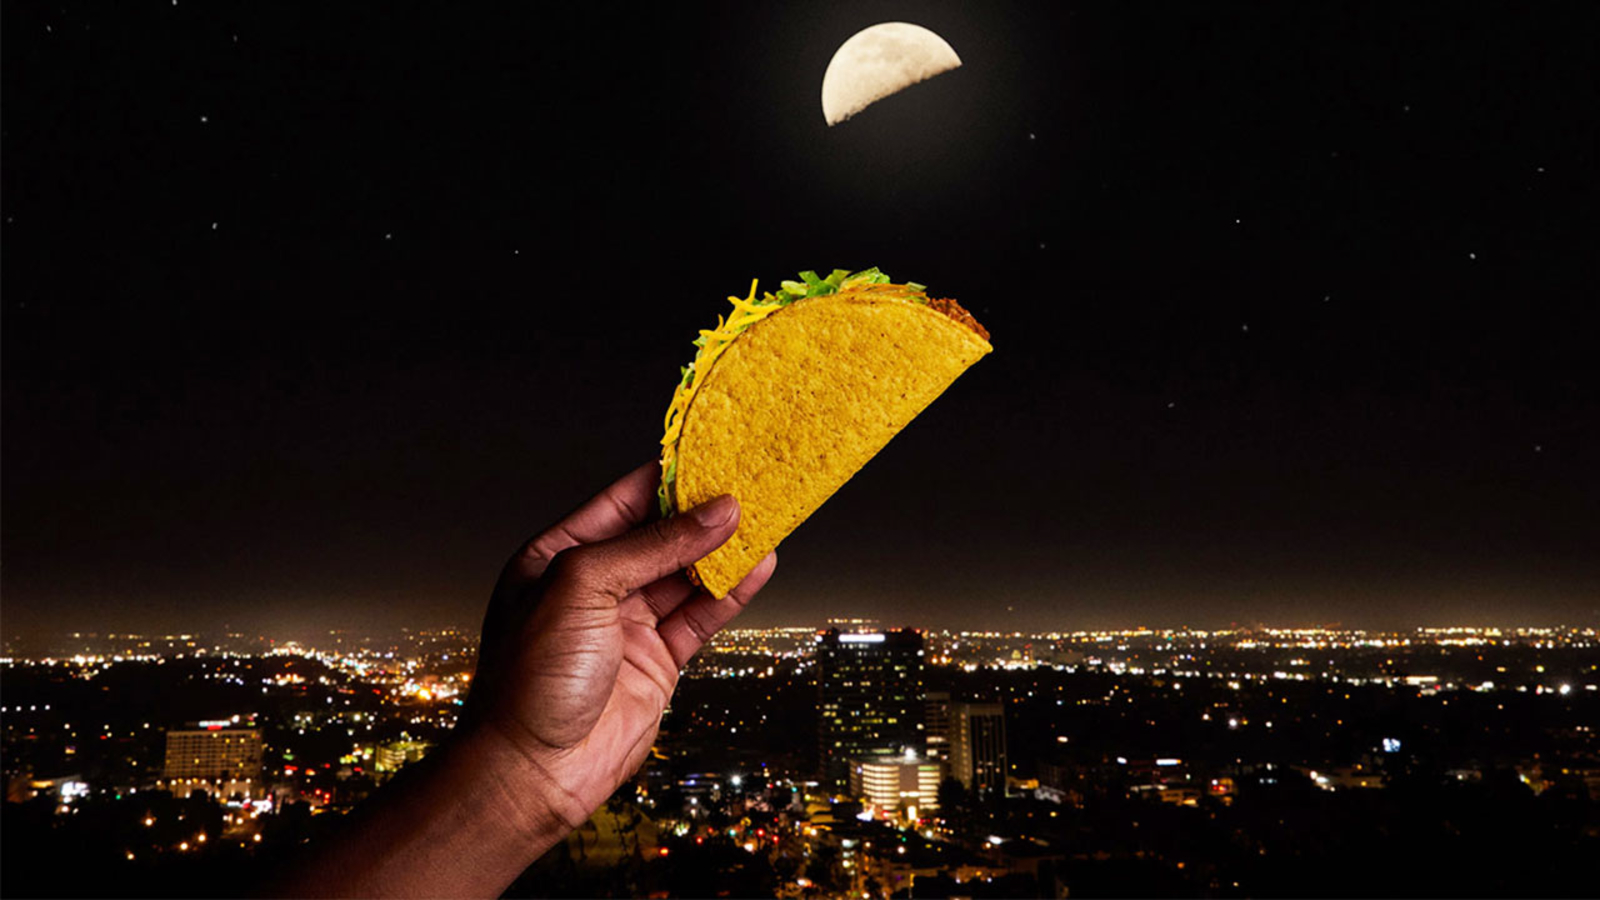 'Taco Moon' May 4th: Taco Bell giving away free tacos to celebrate moon's waning crescent phase